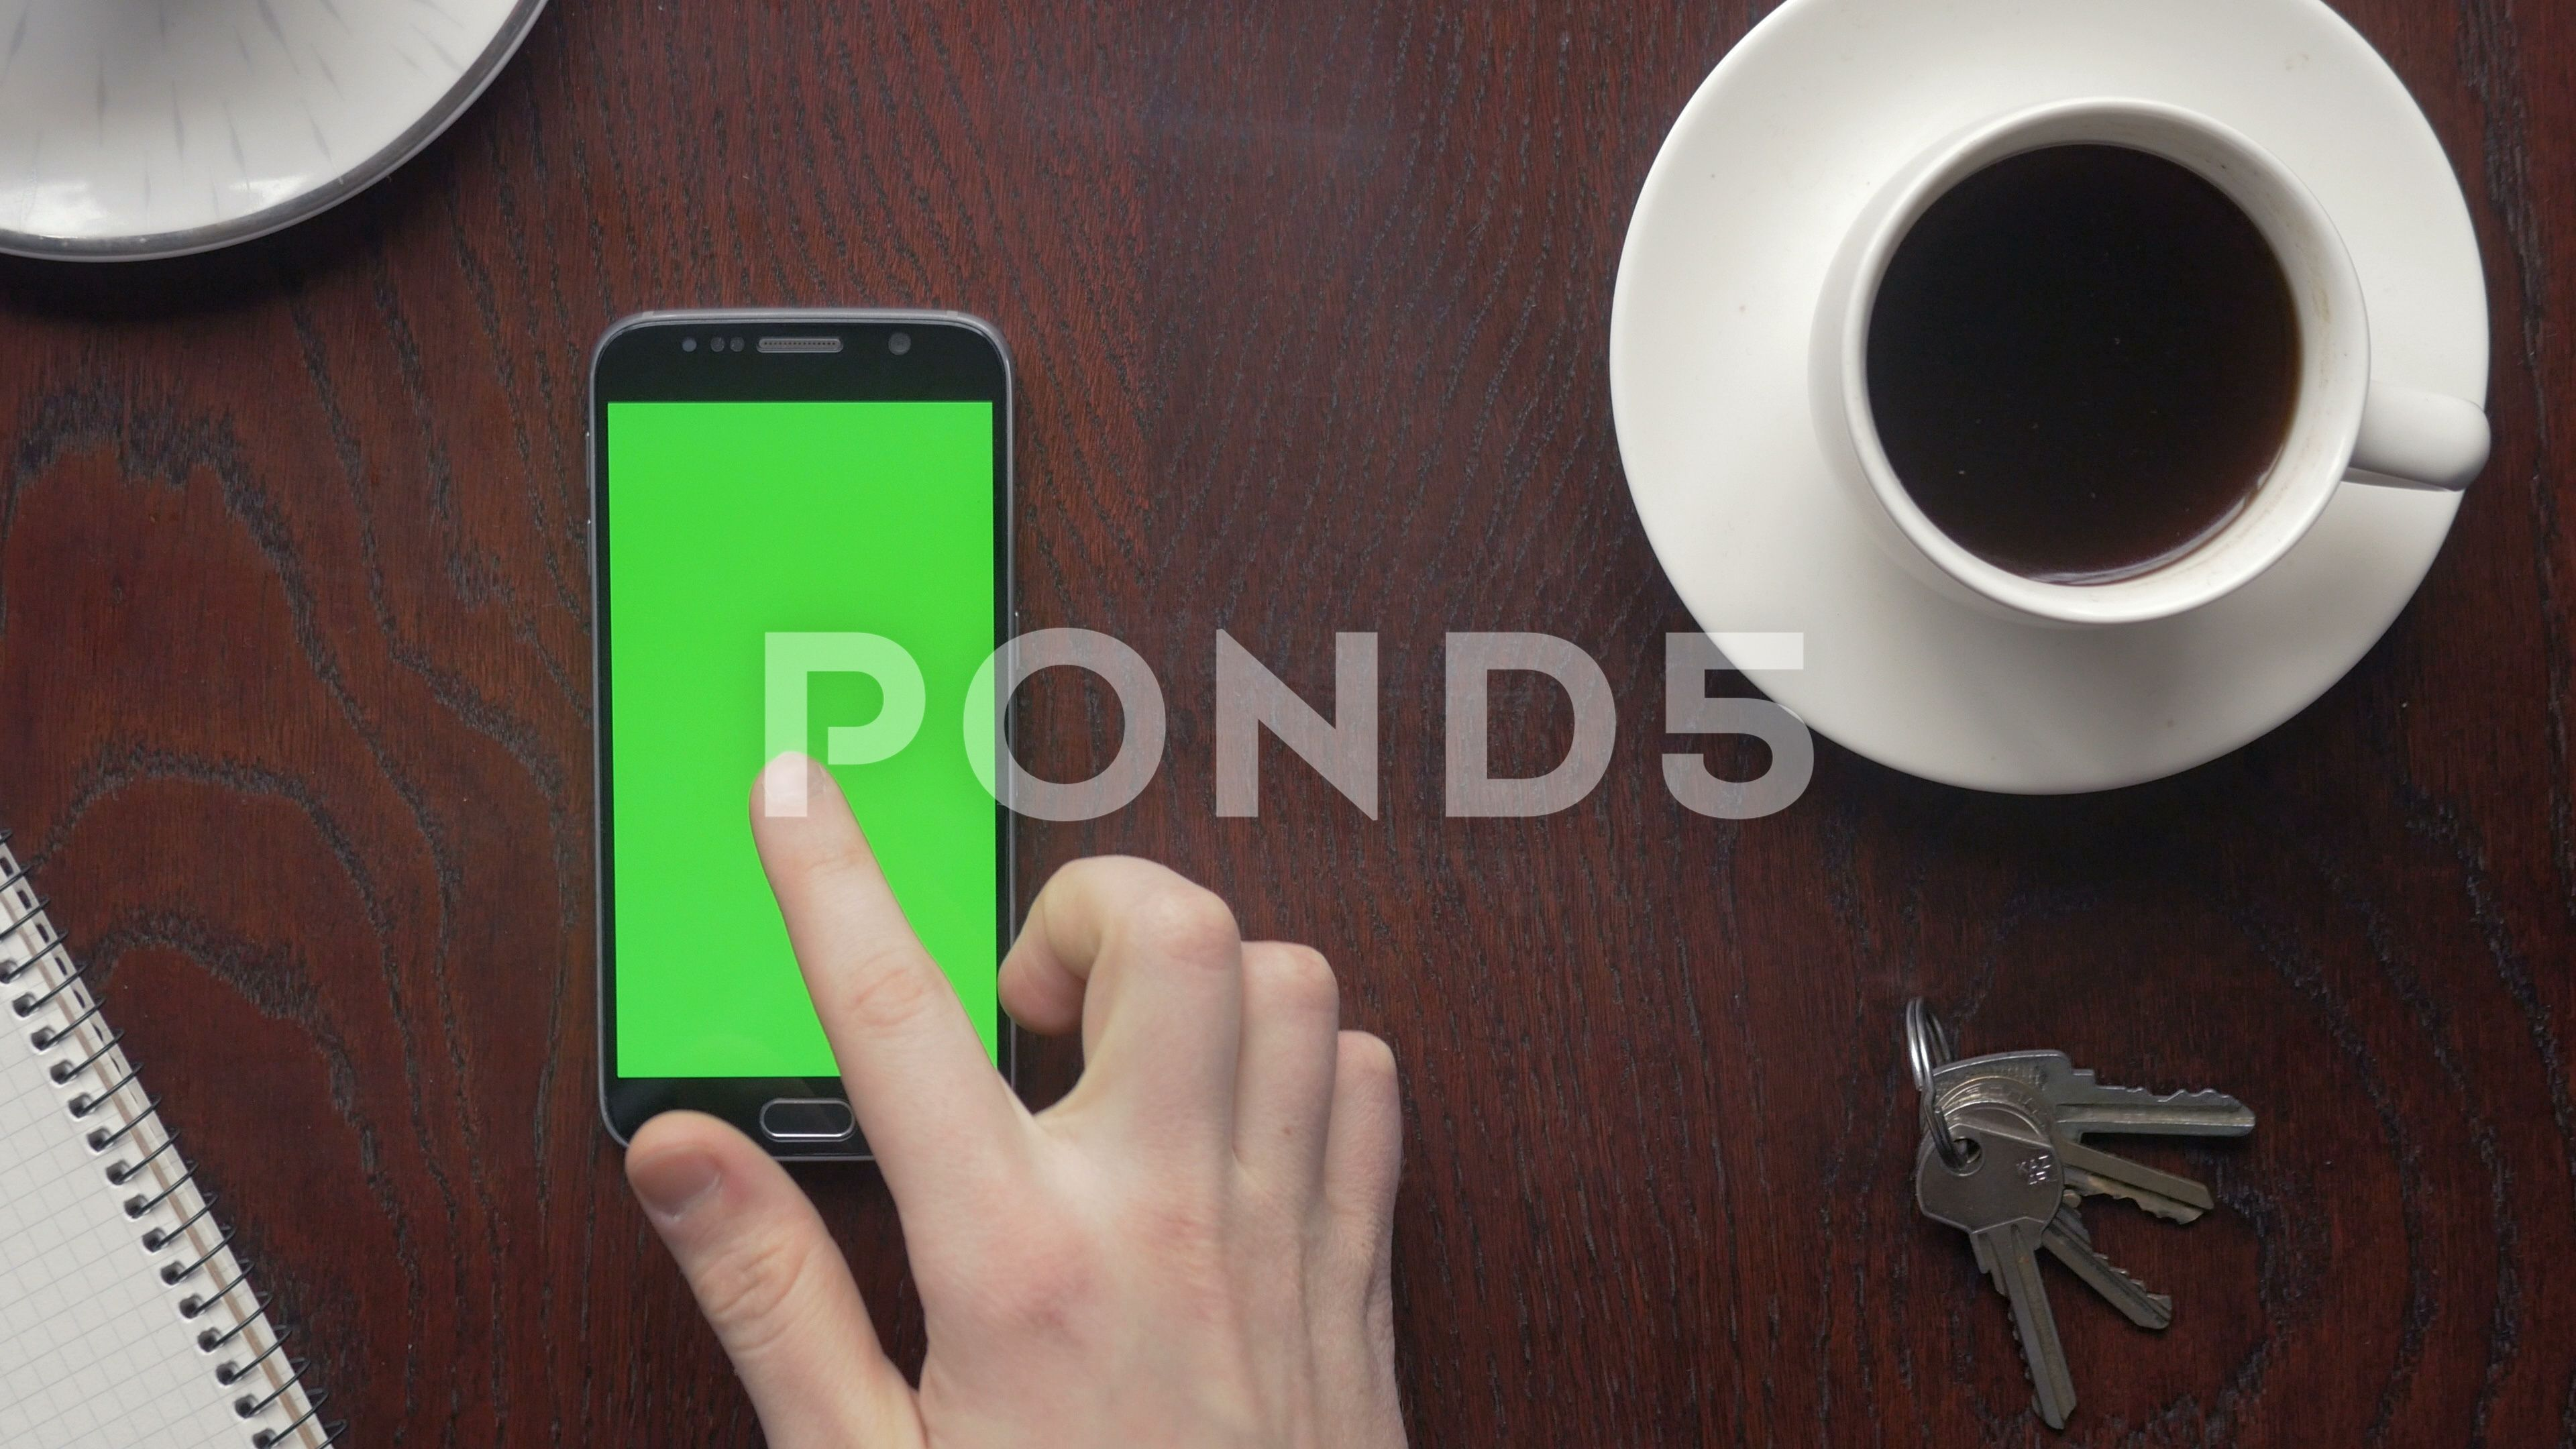 Man Making Various Gestures On The Green Screen Of A Phone Stock Footage Ad Gestures Green Man Making Greenscreen Wooden Tables Coffee Cups